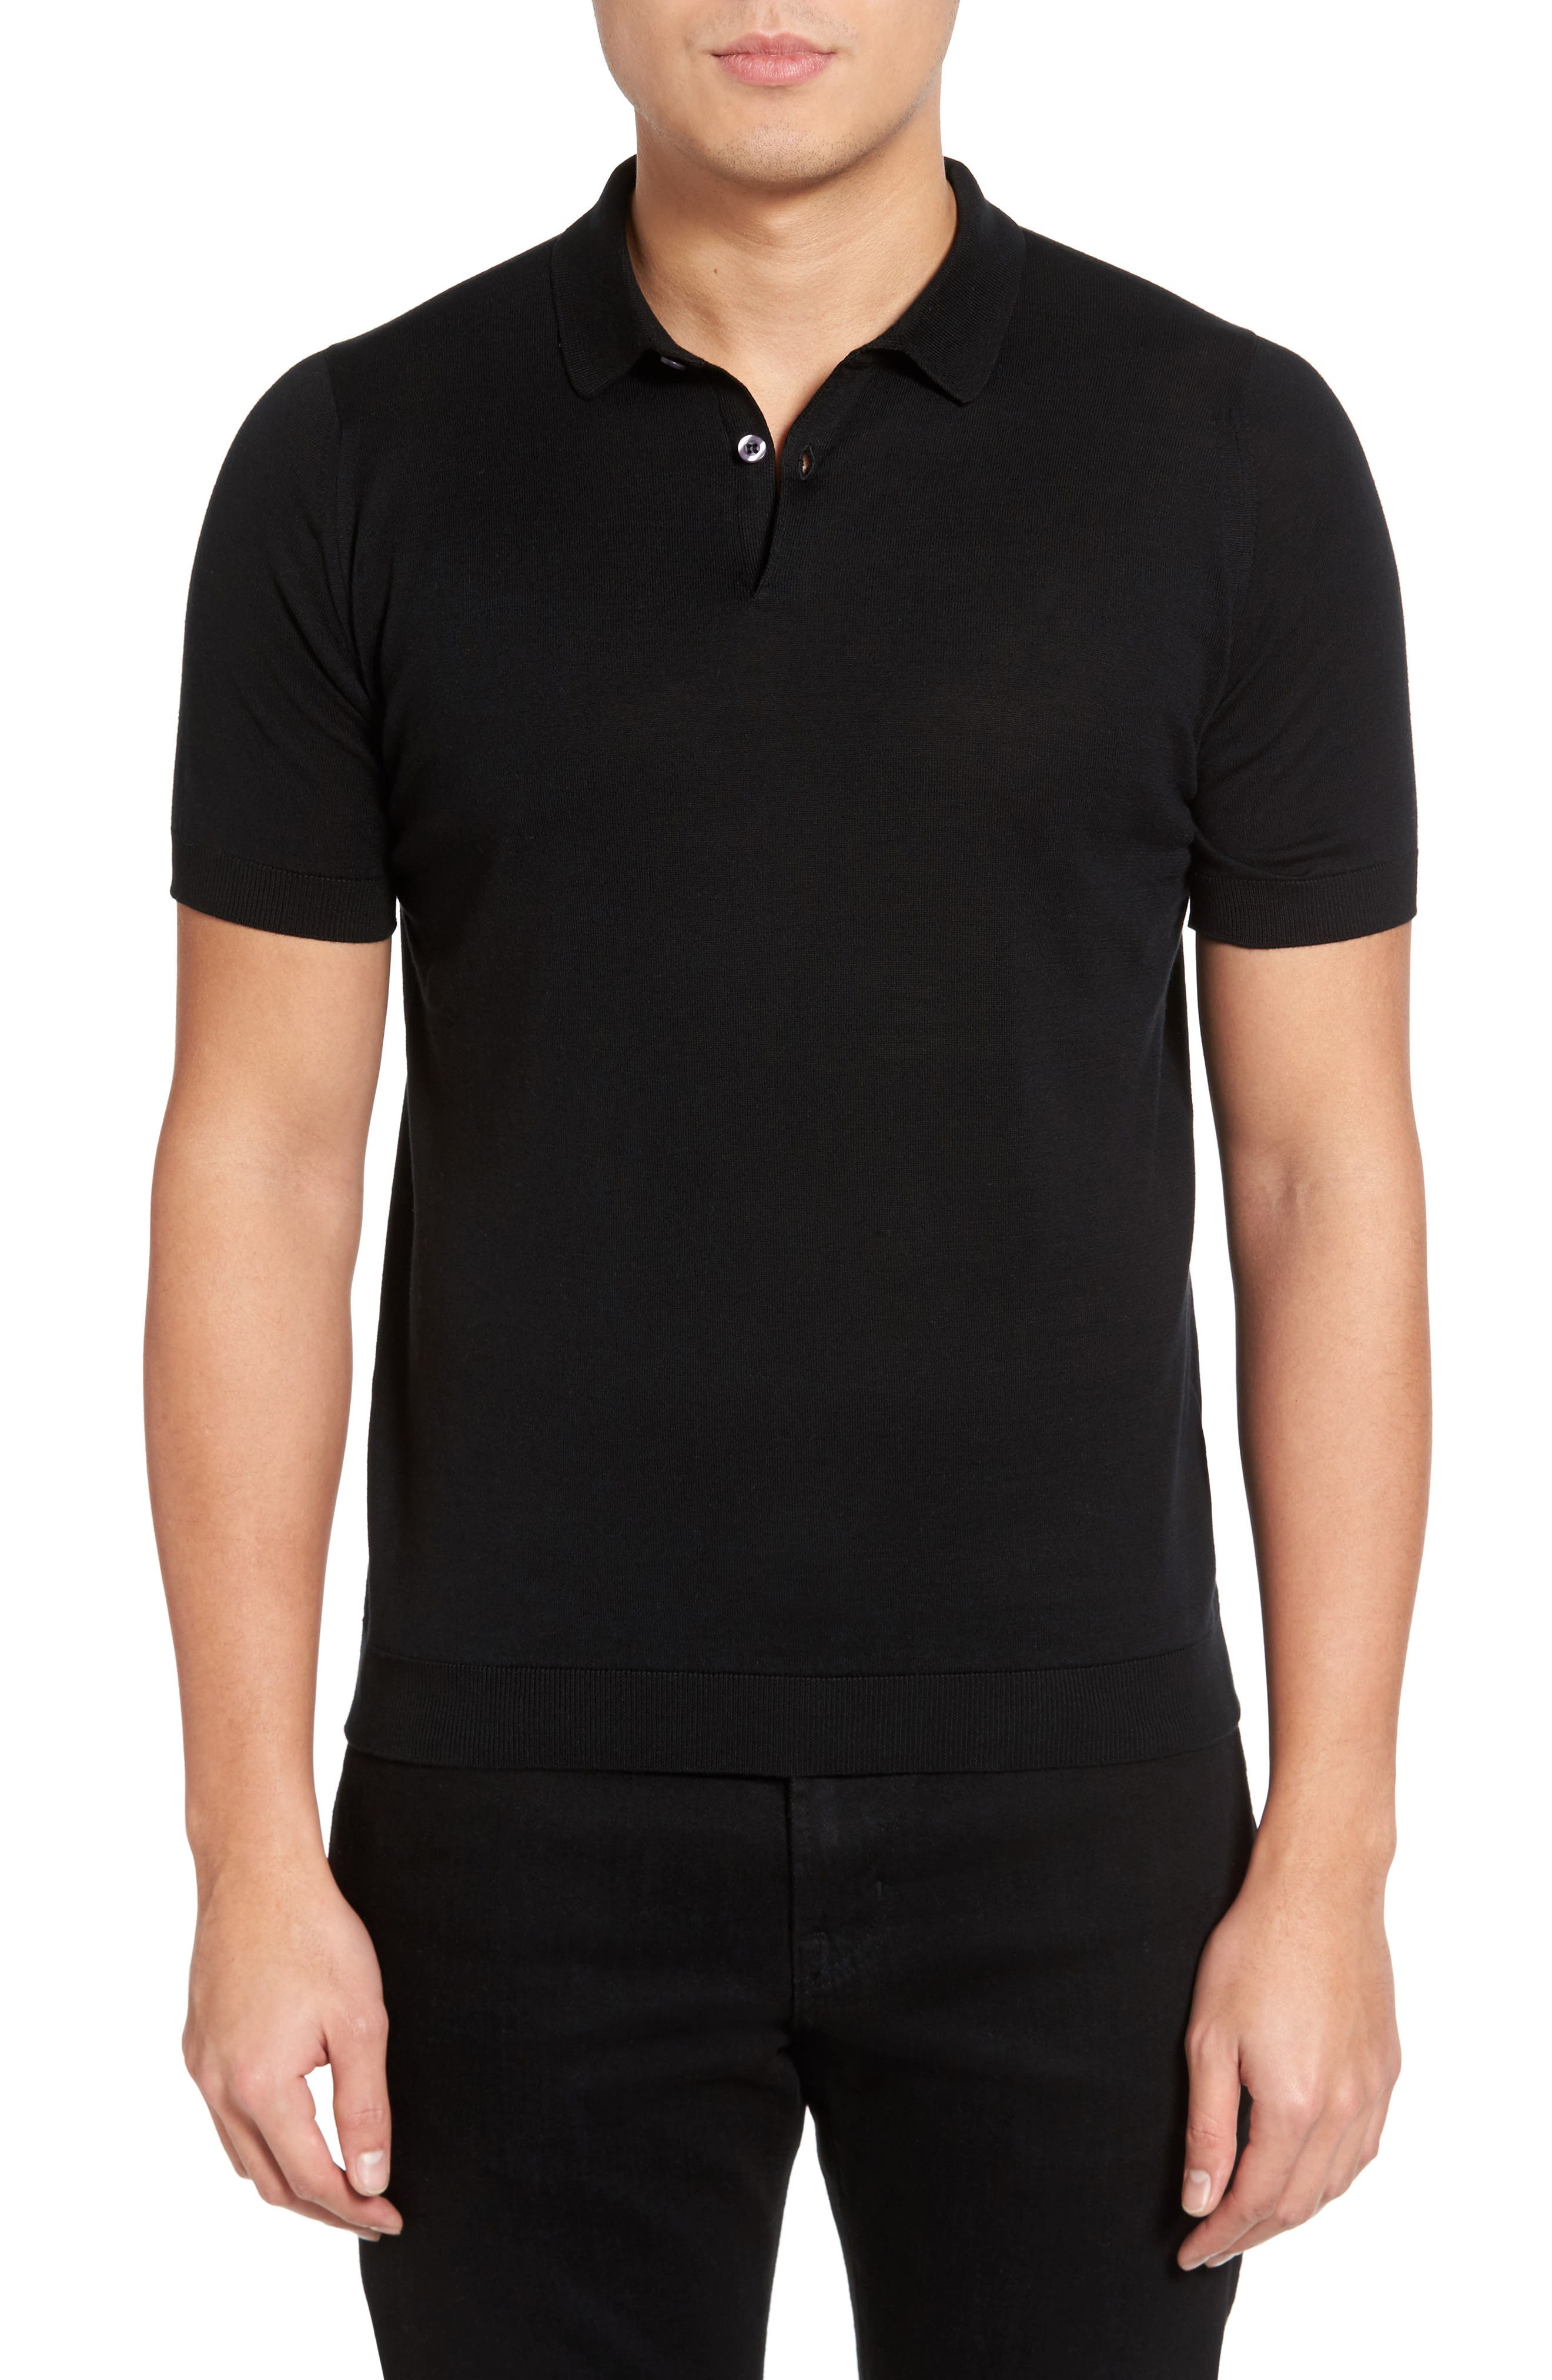 Alternate Image 1 Selected - John Smedley Seal Island Cotton Polo